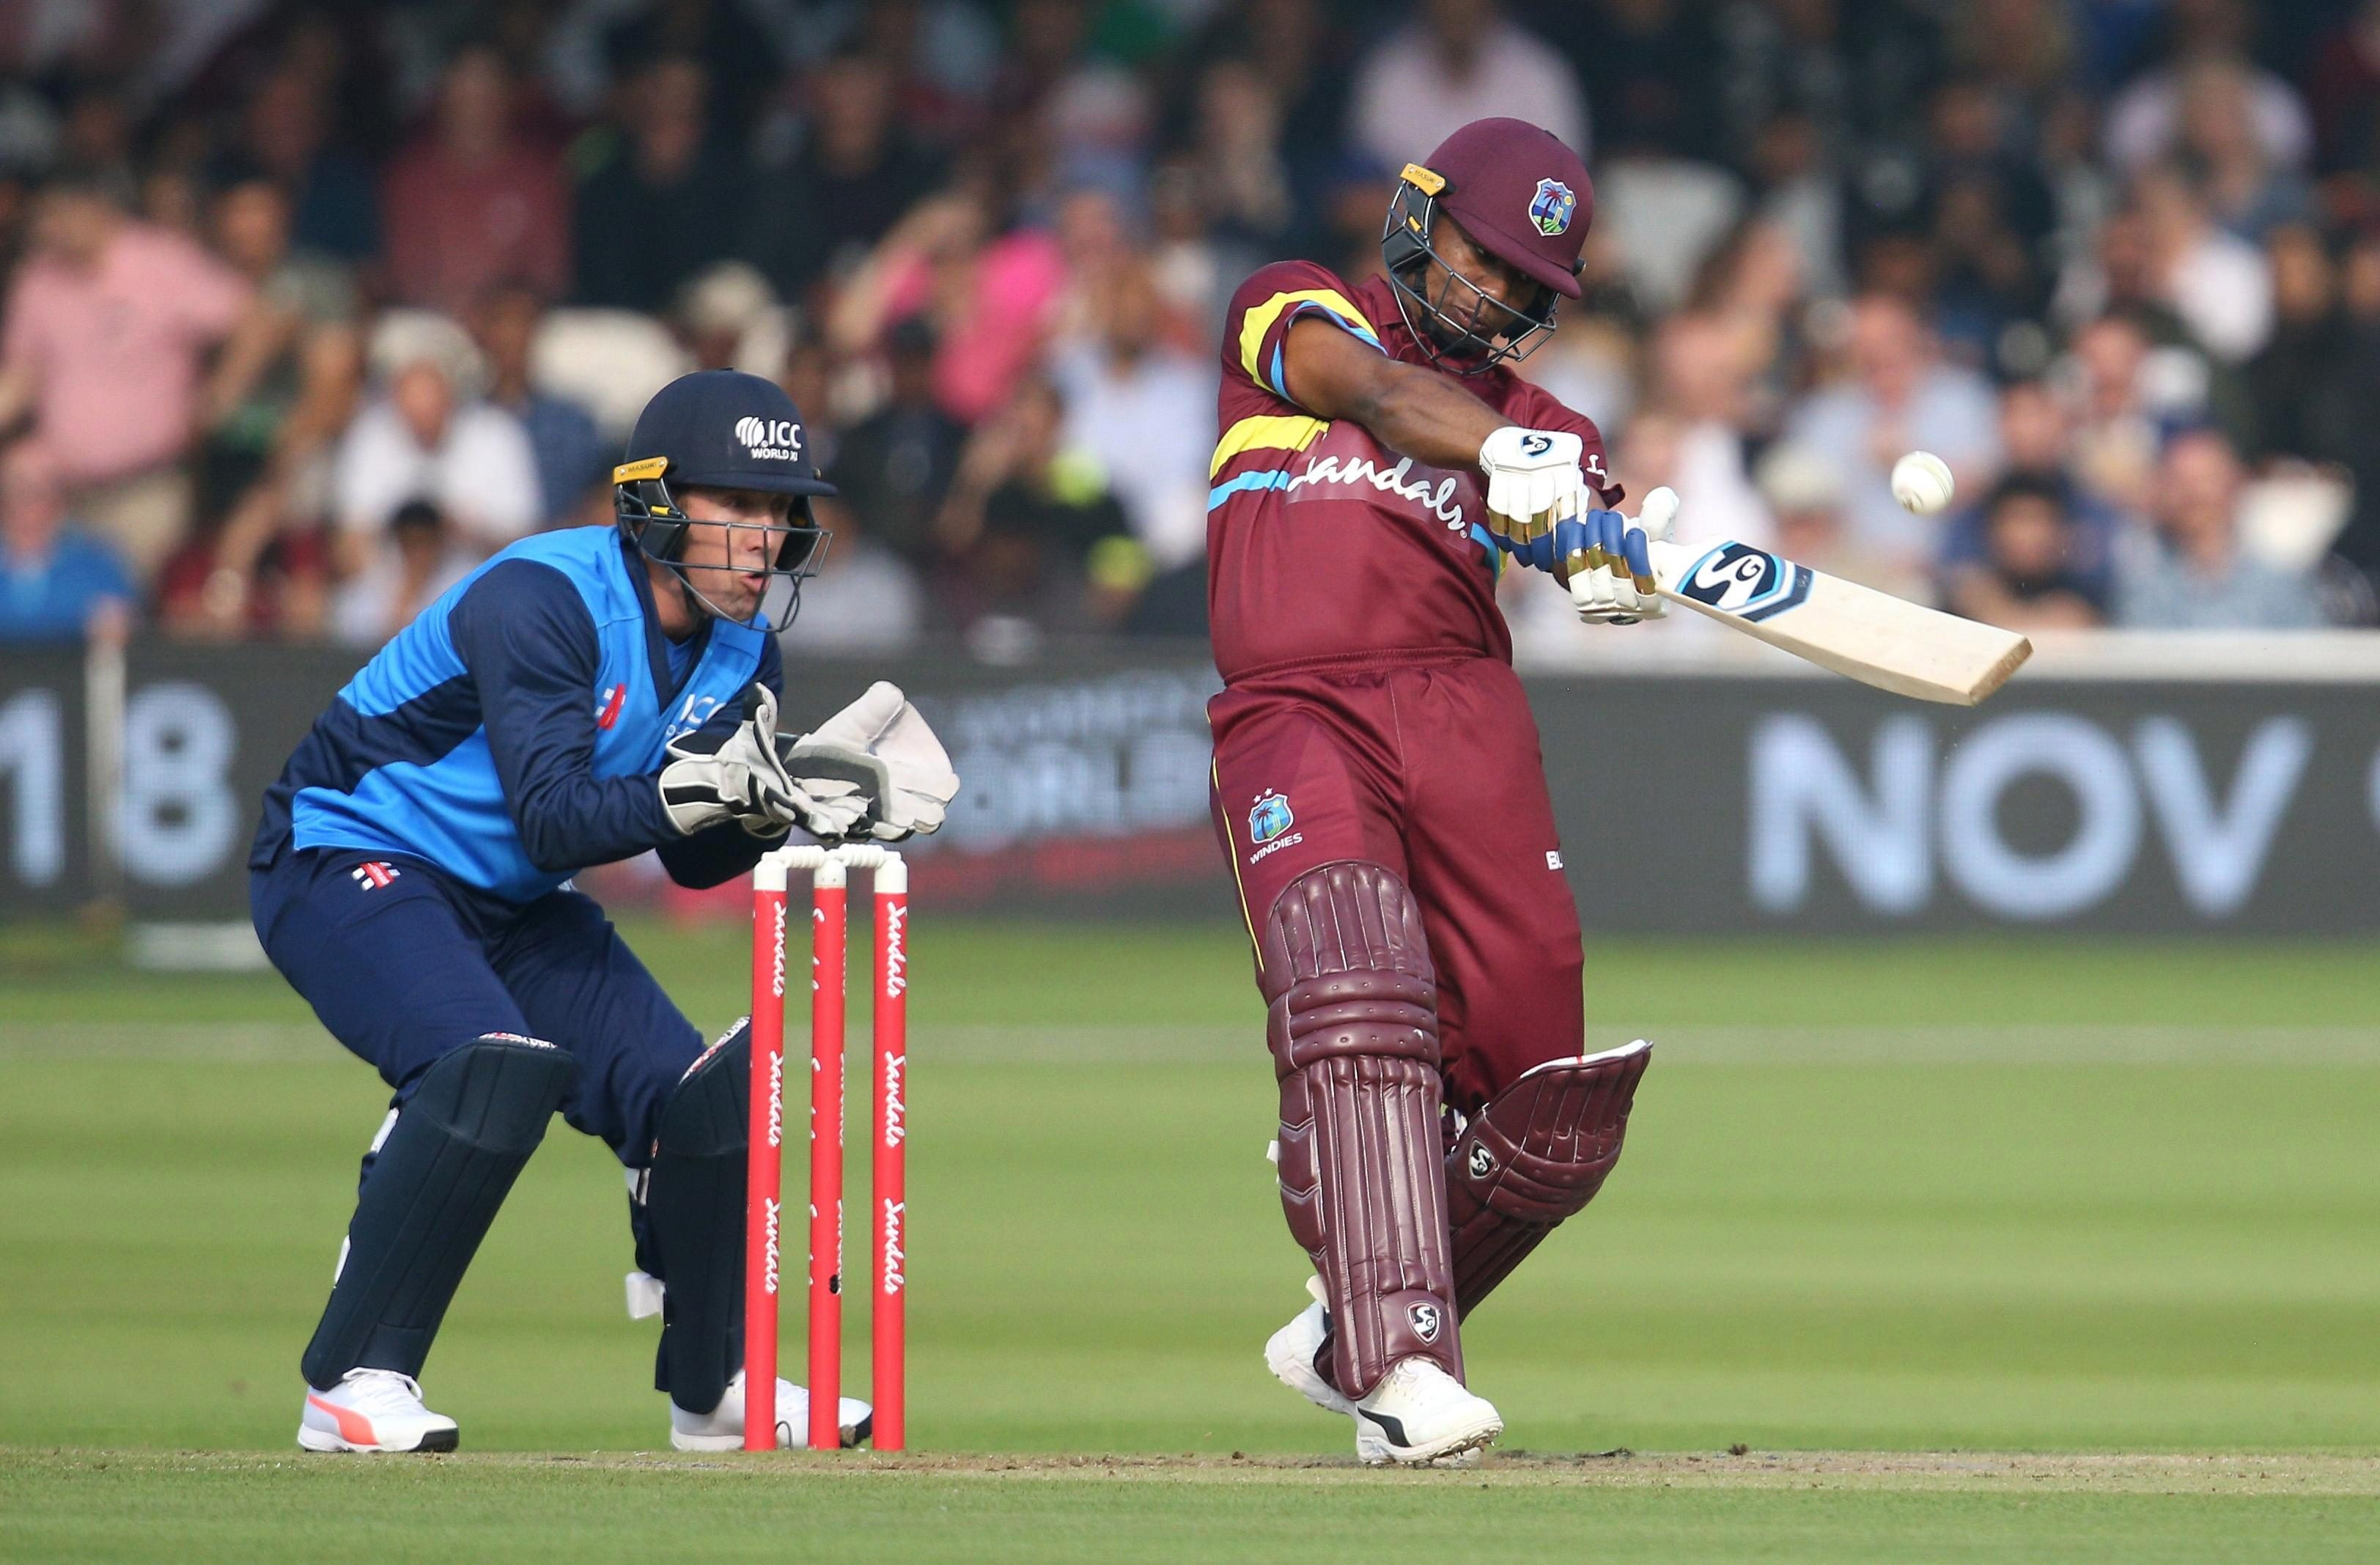 Evin Lewis smashed 59 to lift West Indies to 199-4